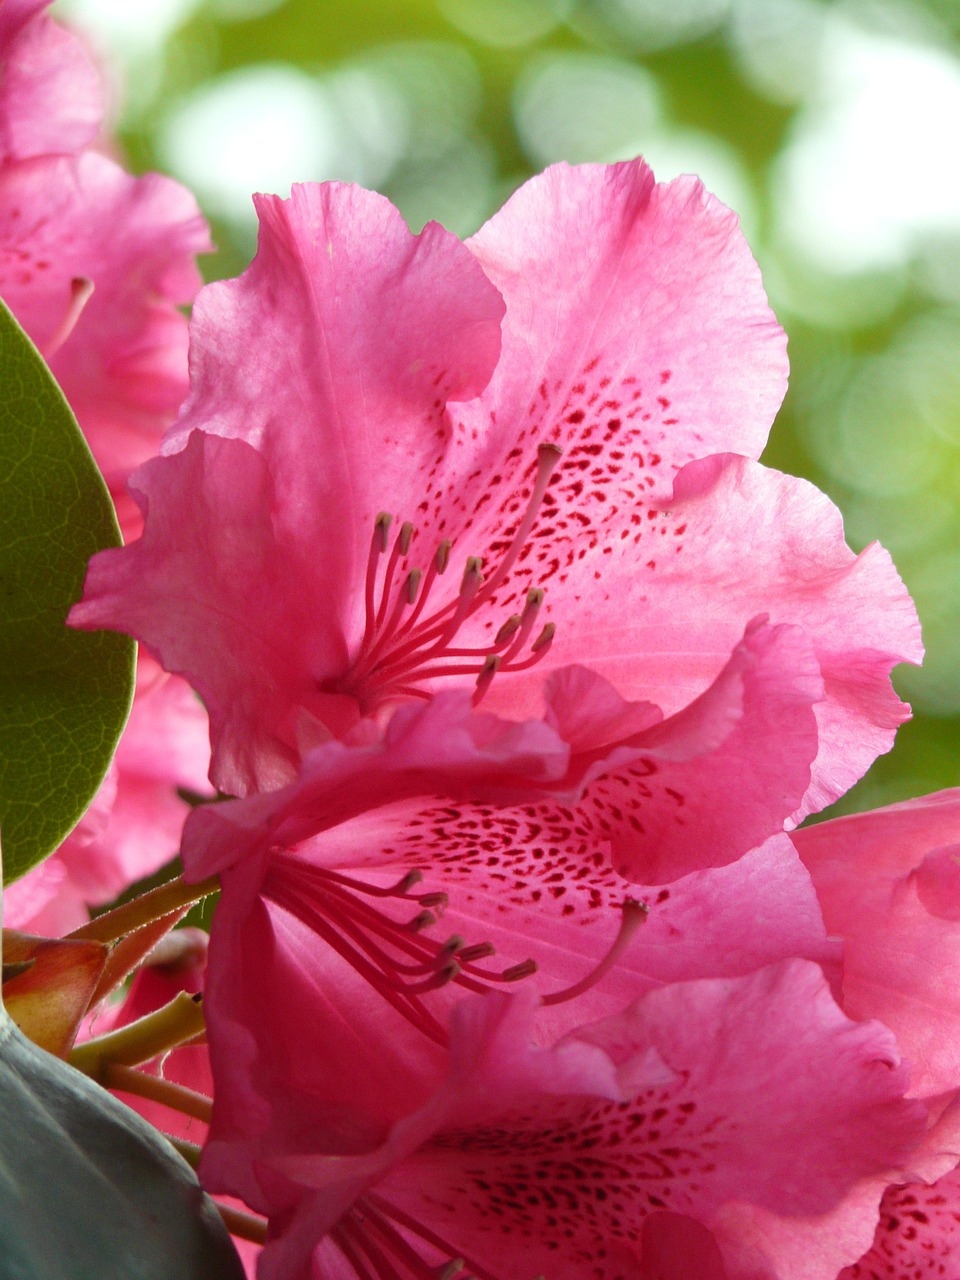 azalea rhododendron flowers free photo